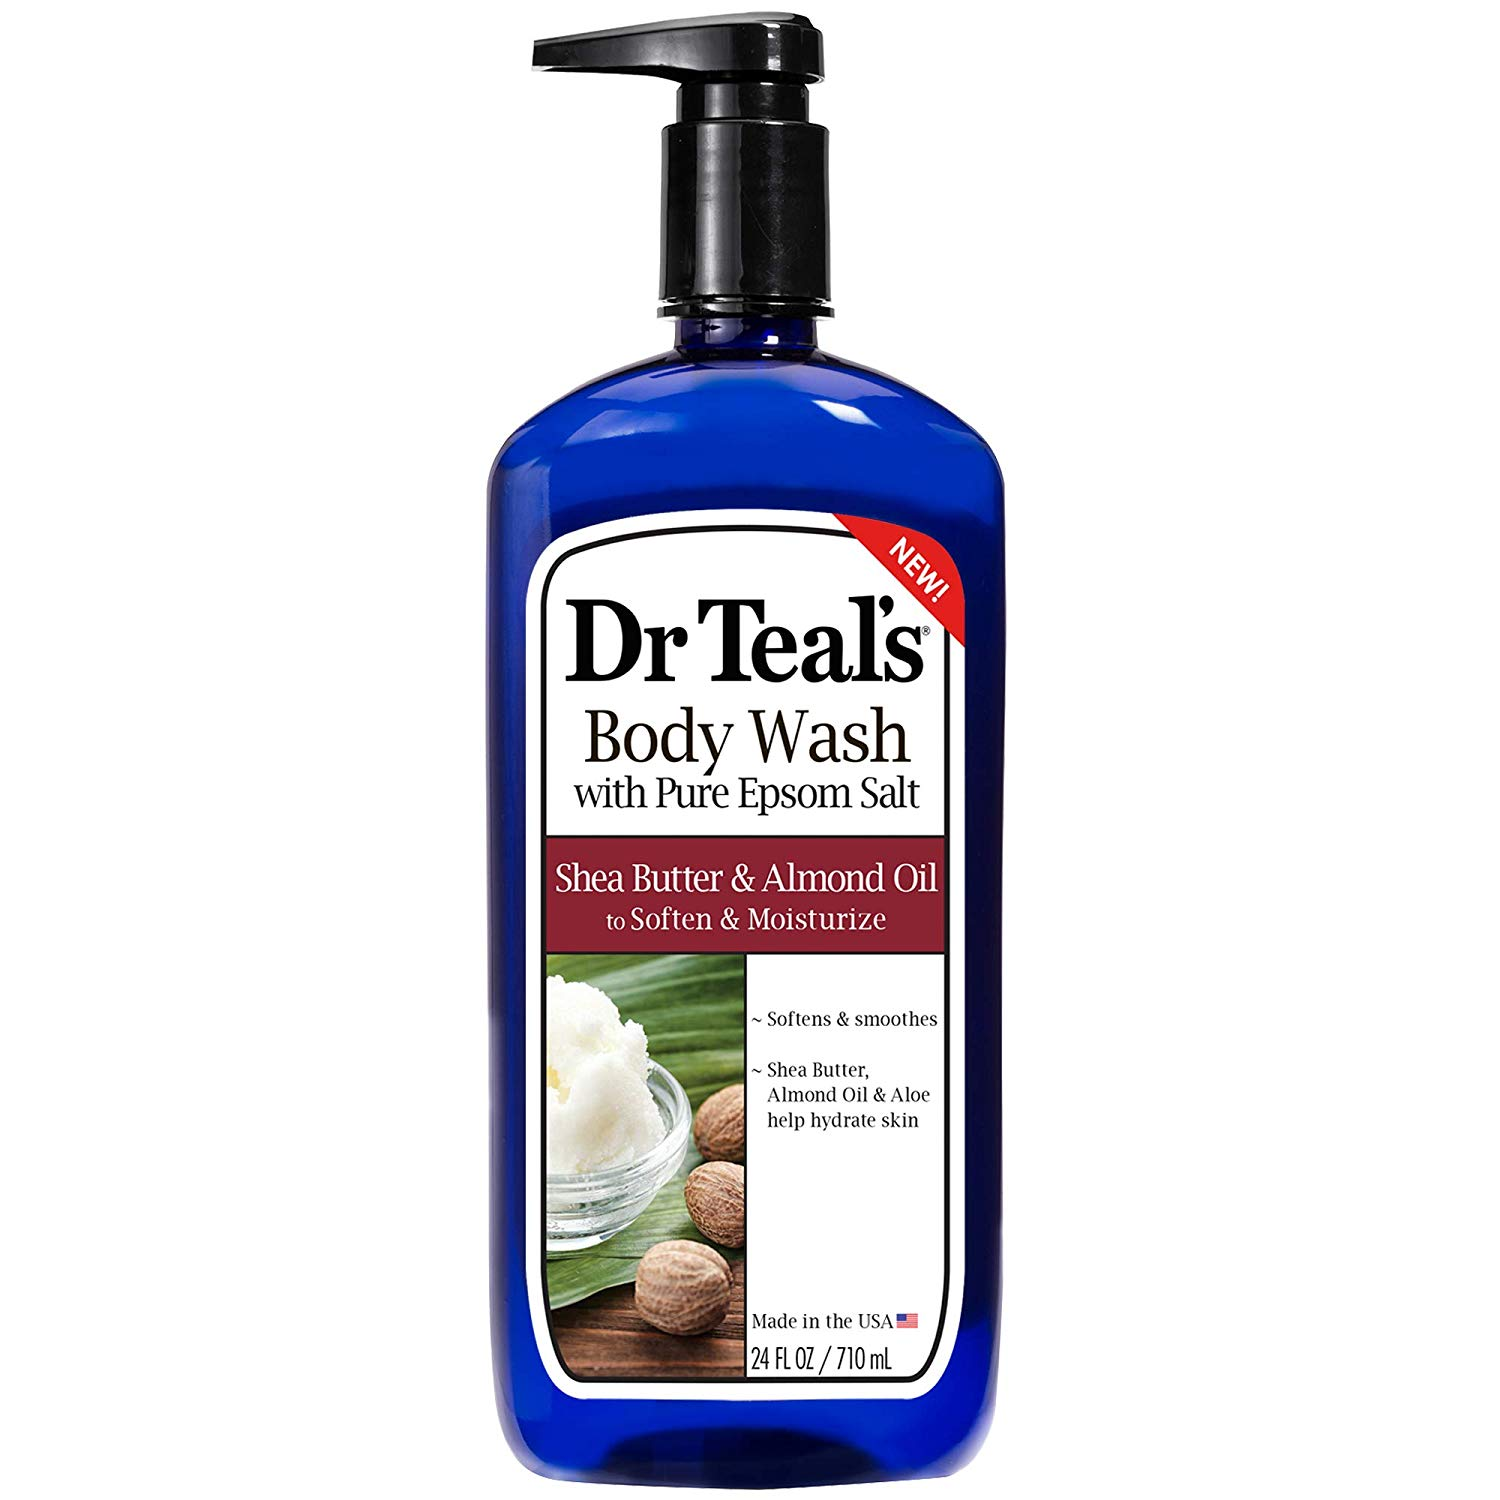 Dr. Teal's Shea Butter & Almond Oil Body Wash